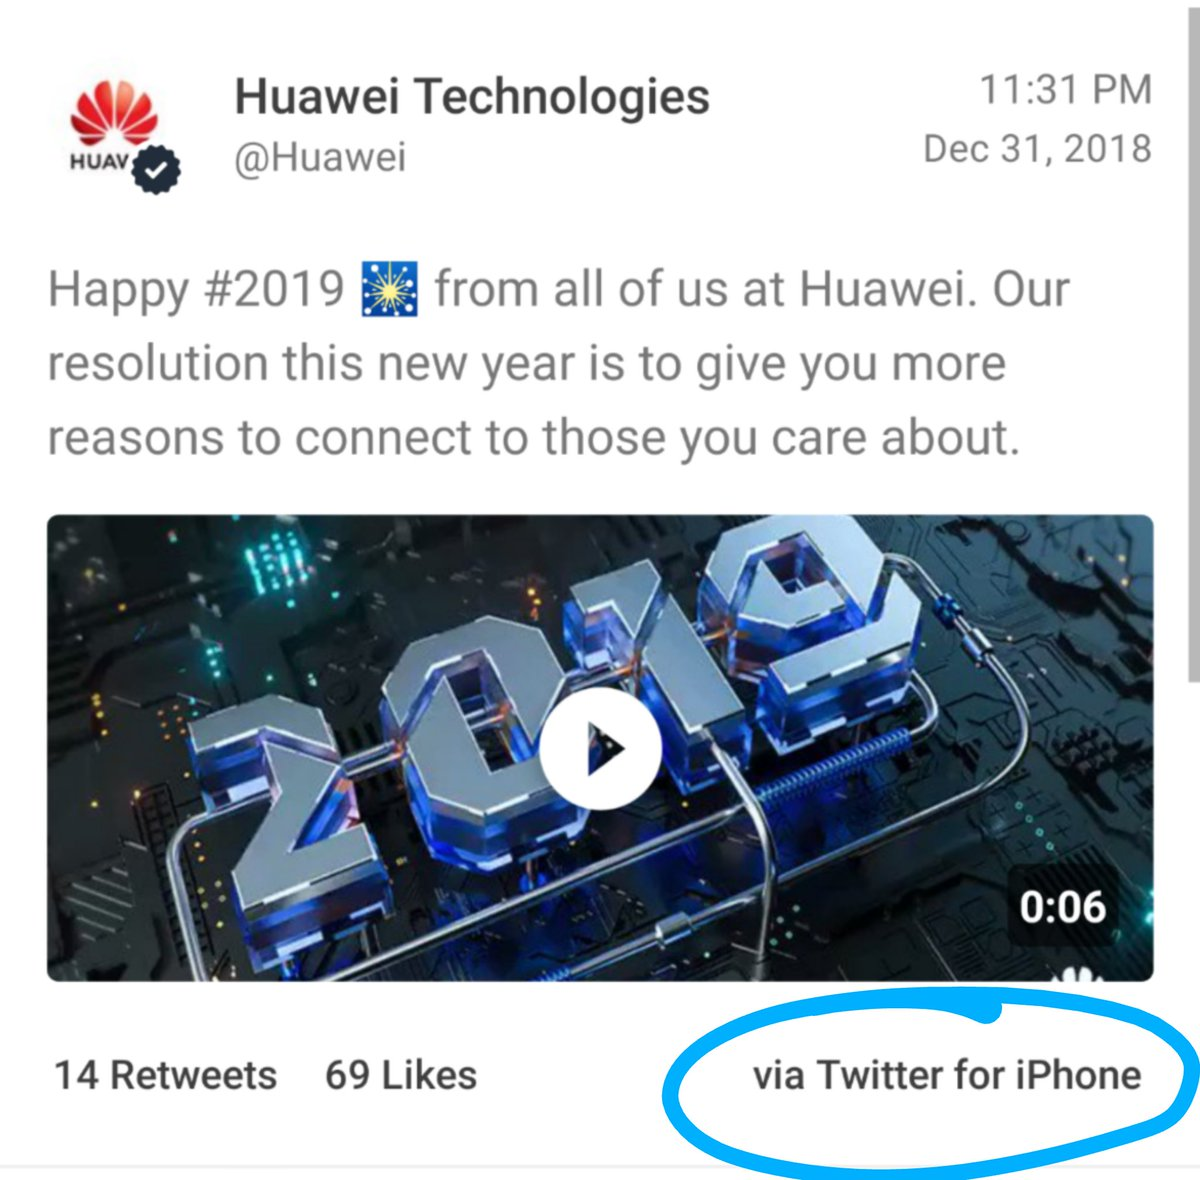 Huawei Employees Punished After iPhone Tweet Blunder